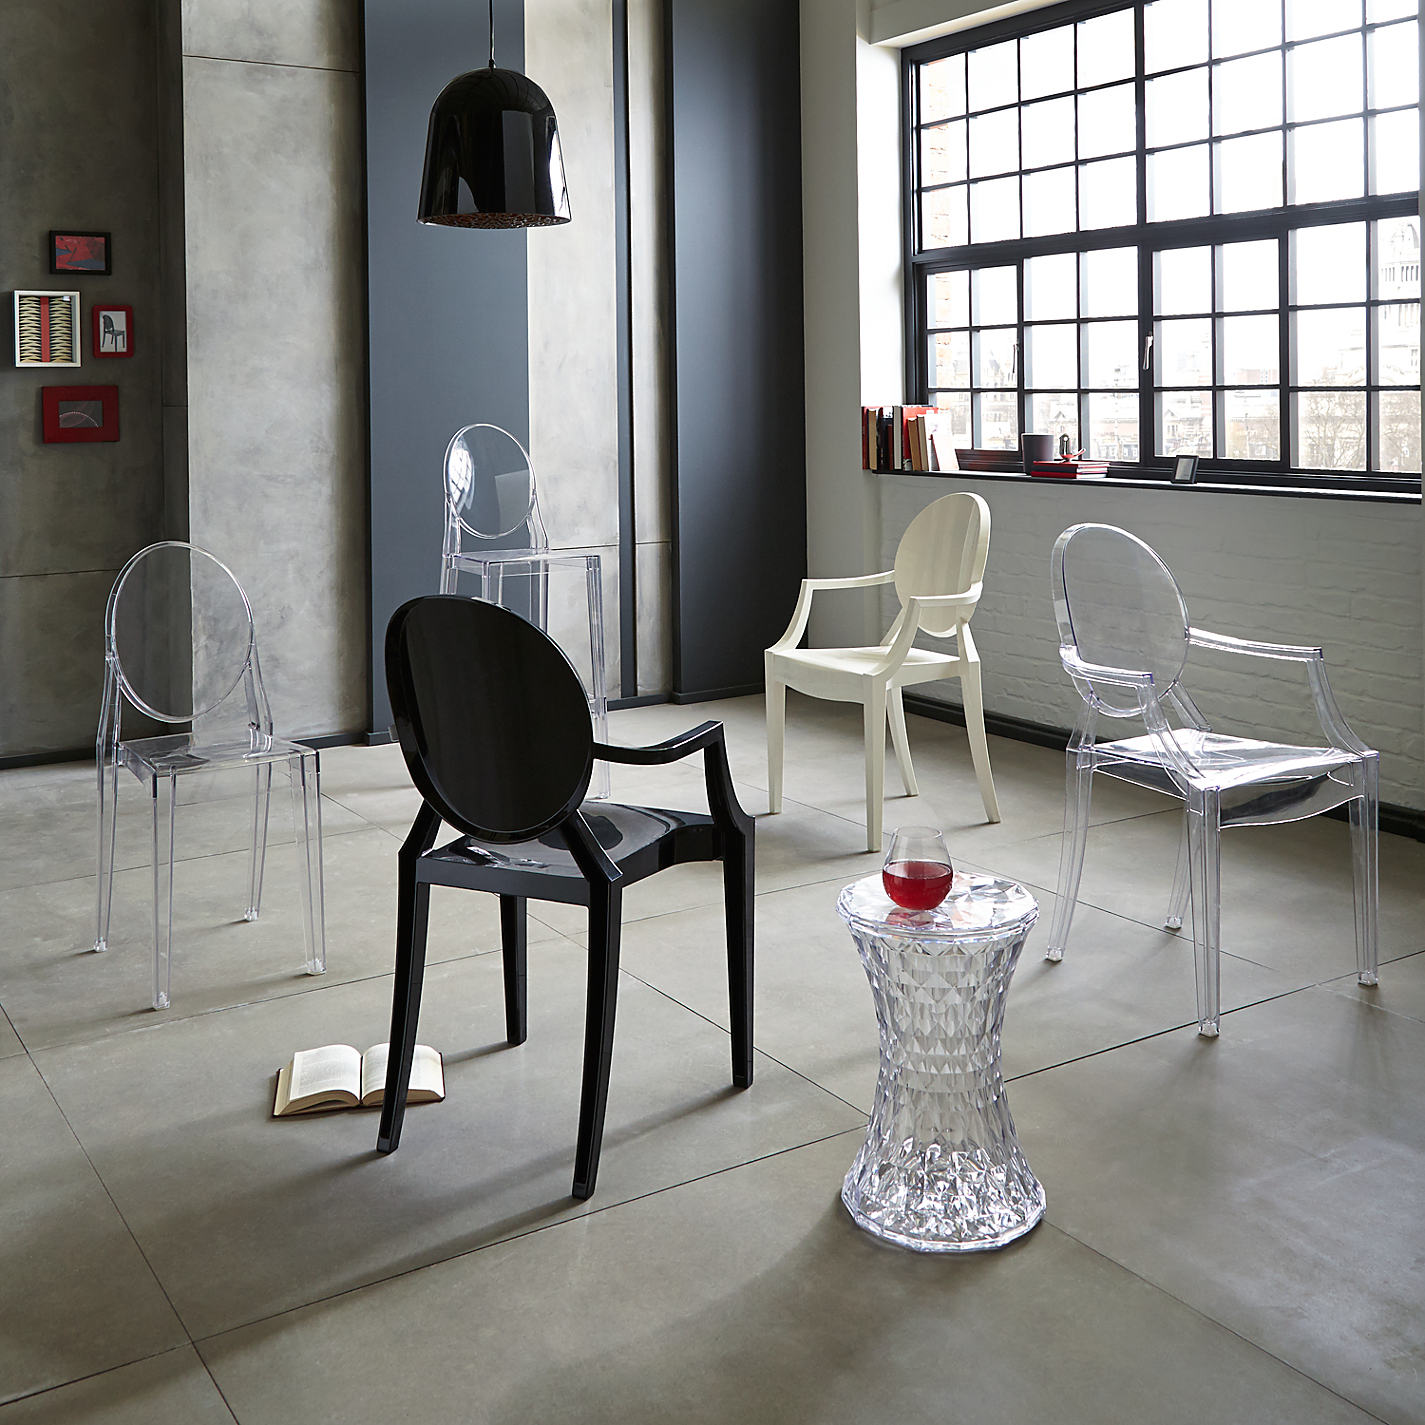 buy philippe starck for kartell louis ghost chair  john lewis -  buy philippe starck for kartell louis ghost chair online atjohnlewiscom